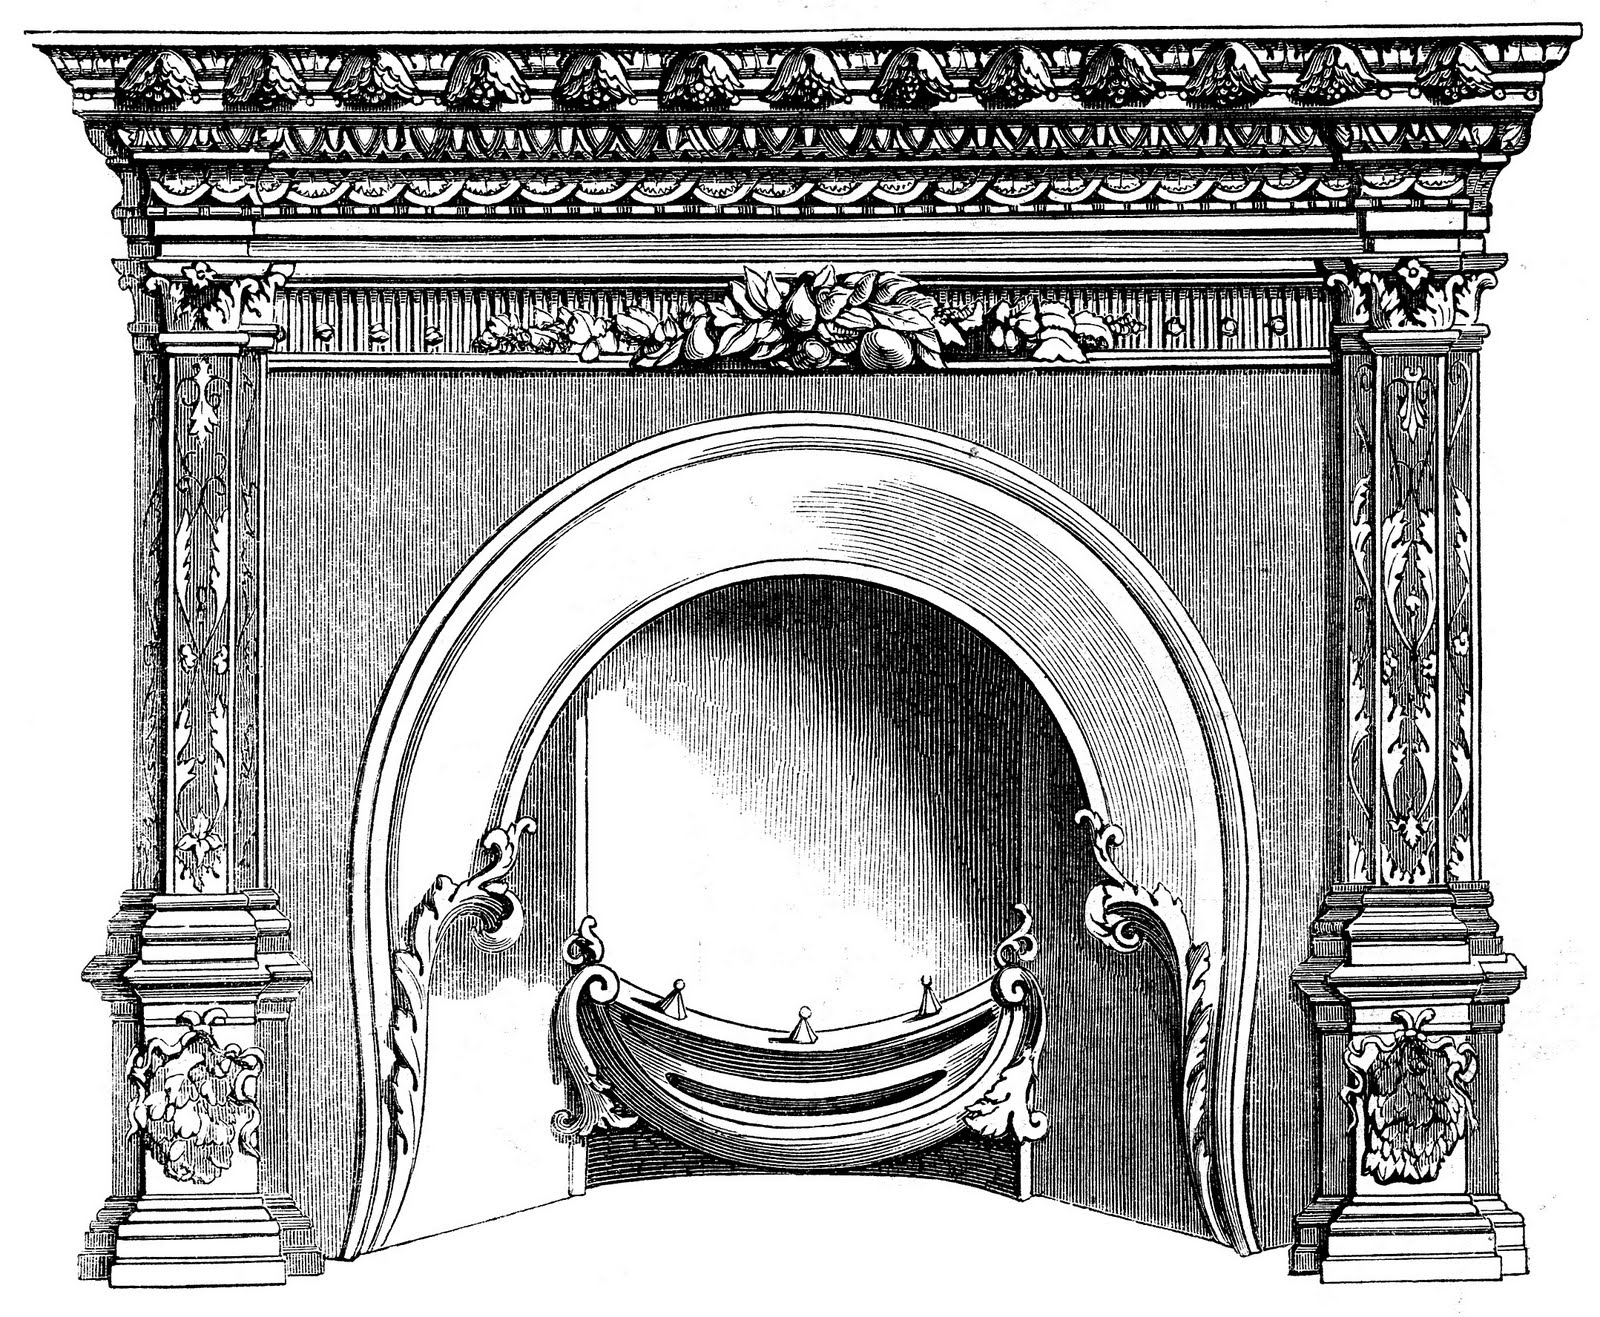 Vintage Clip Art - Fireplace Mantels - Christmas - The Graphics Fairy